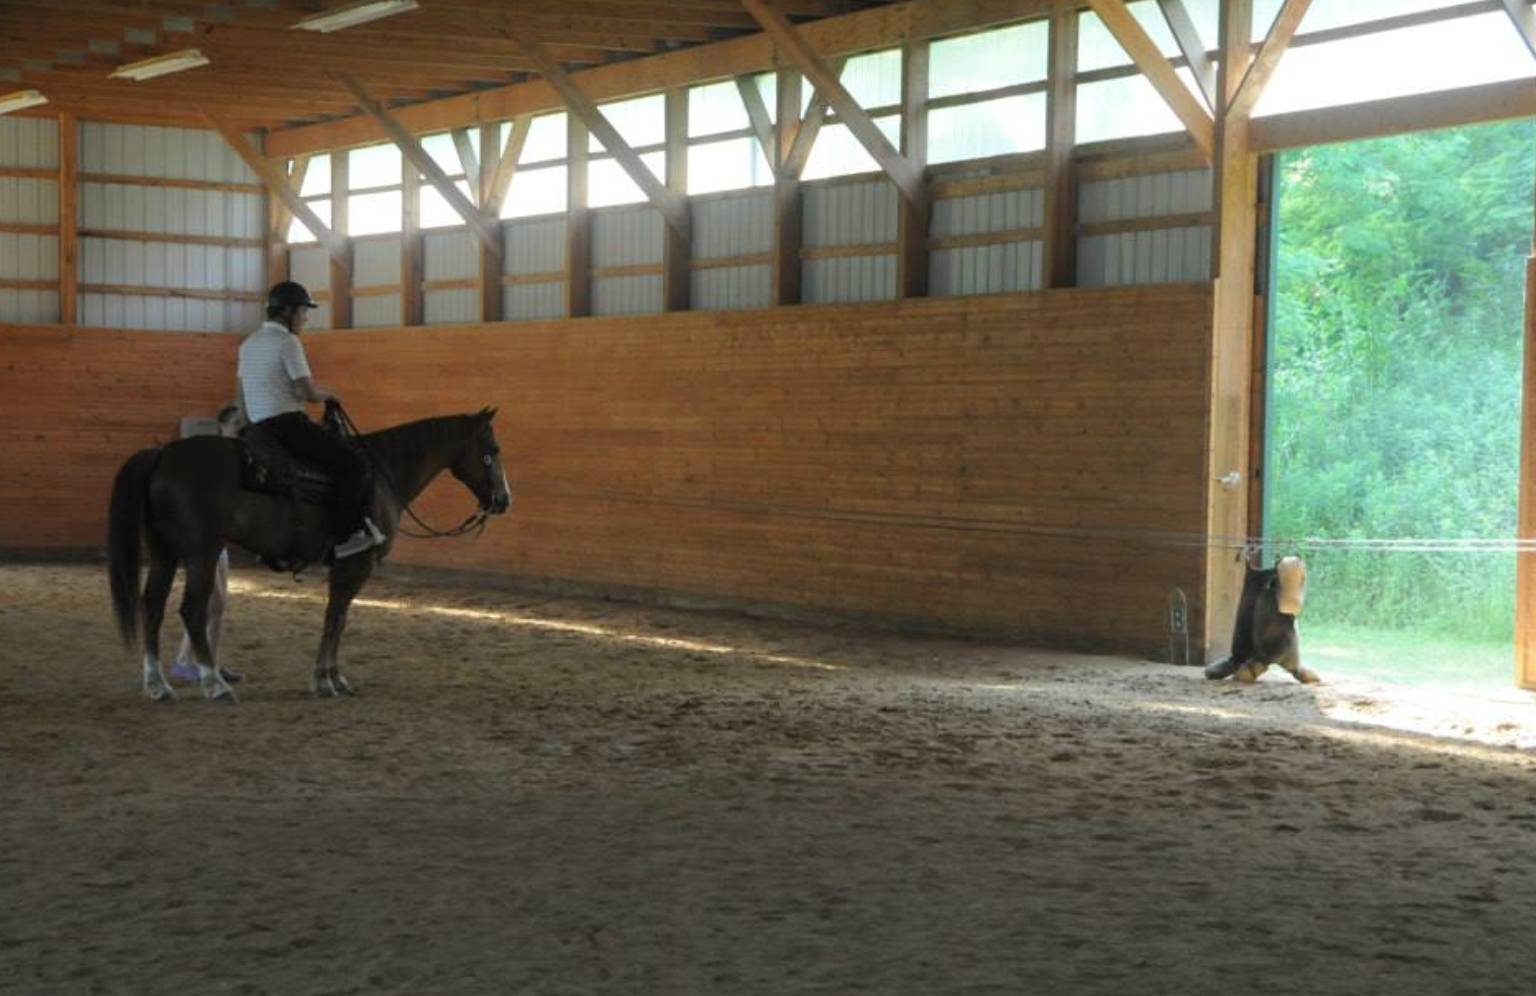 August Torsilieri, of Torsilieri Show Stables, was another one of our 'A' rated instructors. He tried cutting after camp one day and all of the campers enjoyed the demo. Photo by Gillian Warner.